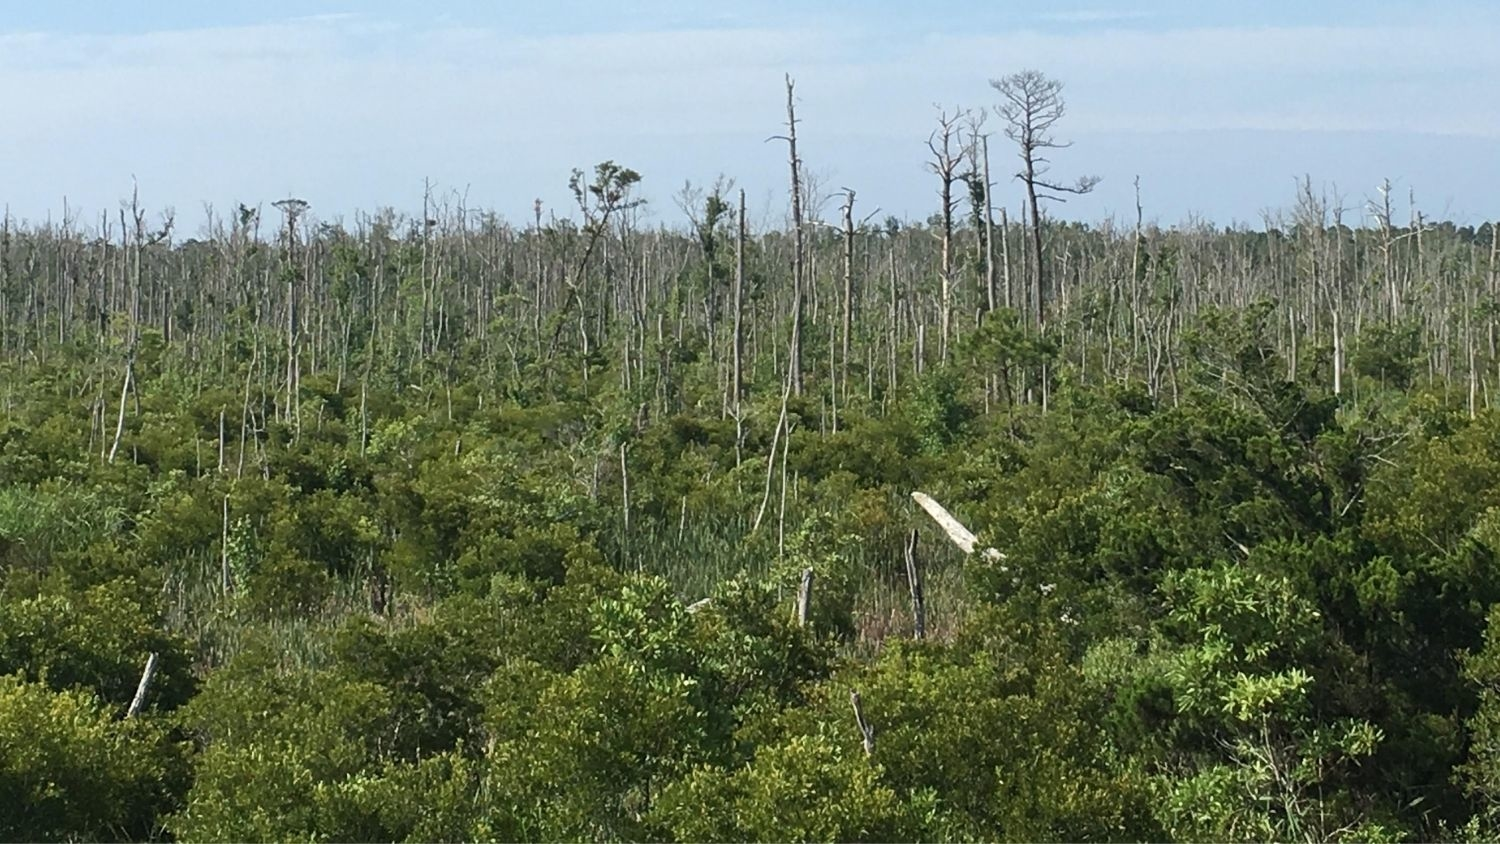 ghost forest - Study Finds Ghosts Forest 'Tree Farts' Contribute to Greenhouse Gas Emissions - College of Natural Resources News NC State University